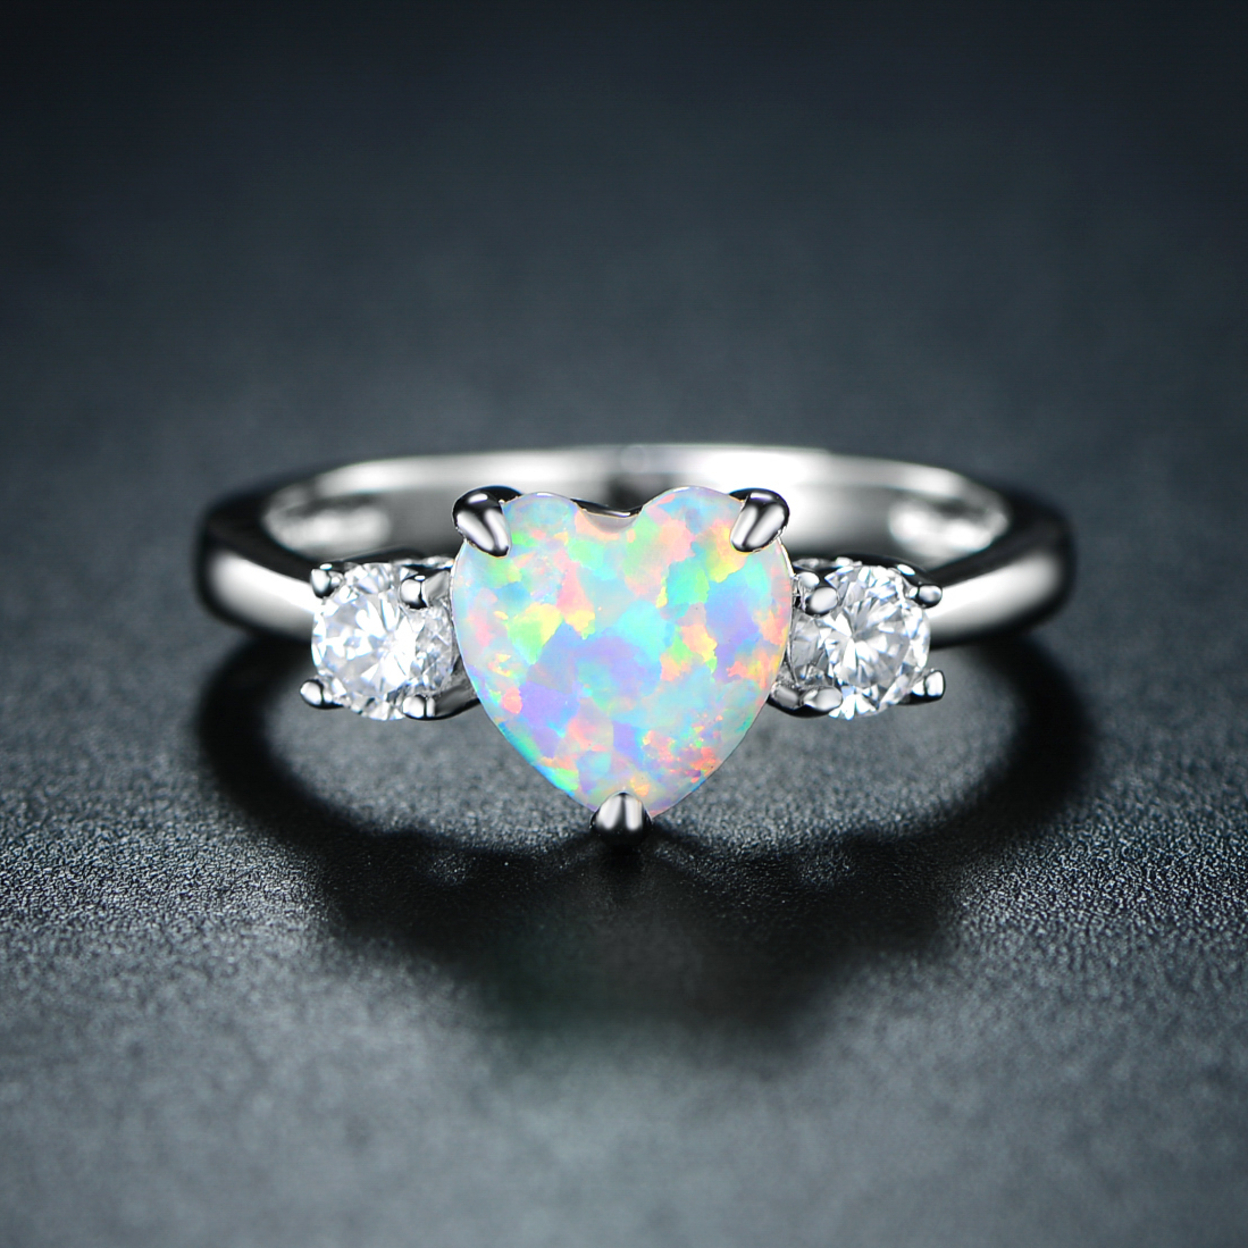 18k White Gold Plated Fire Opal & Heart-cut Cubic Zirconia Ring R1764-s Size 5